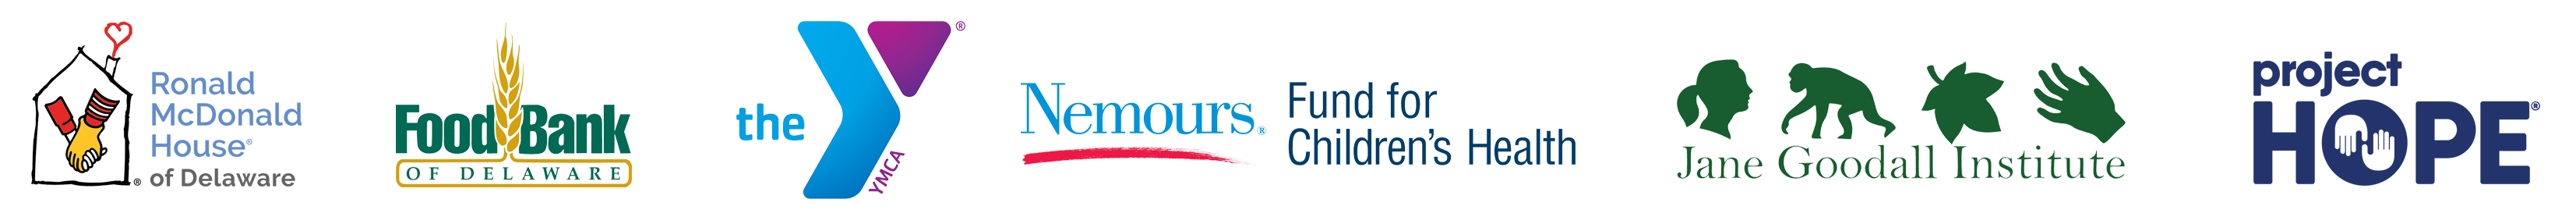 Our clients include the Ronald McDonald House of Delaware, Food Bank of Delaware, YMCA, Nemours Fund for Children's Health, the Jane Goodall Institute, and Project Hope.